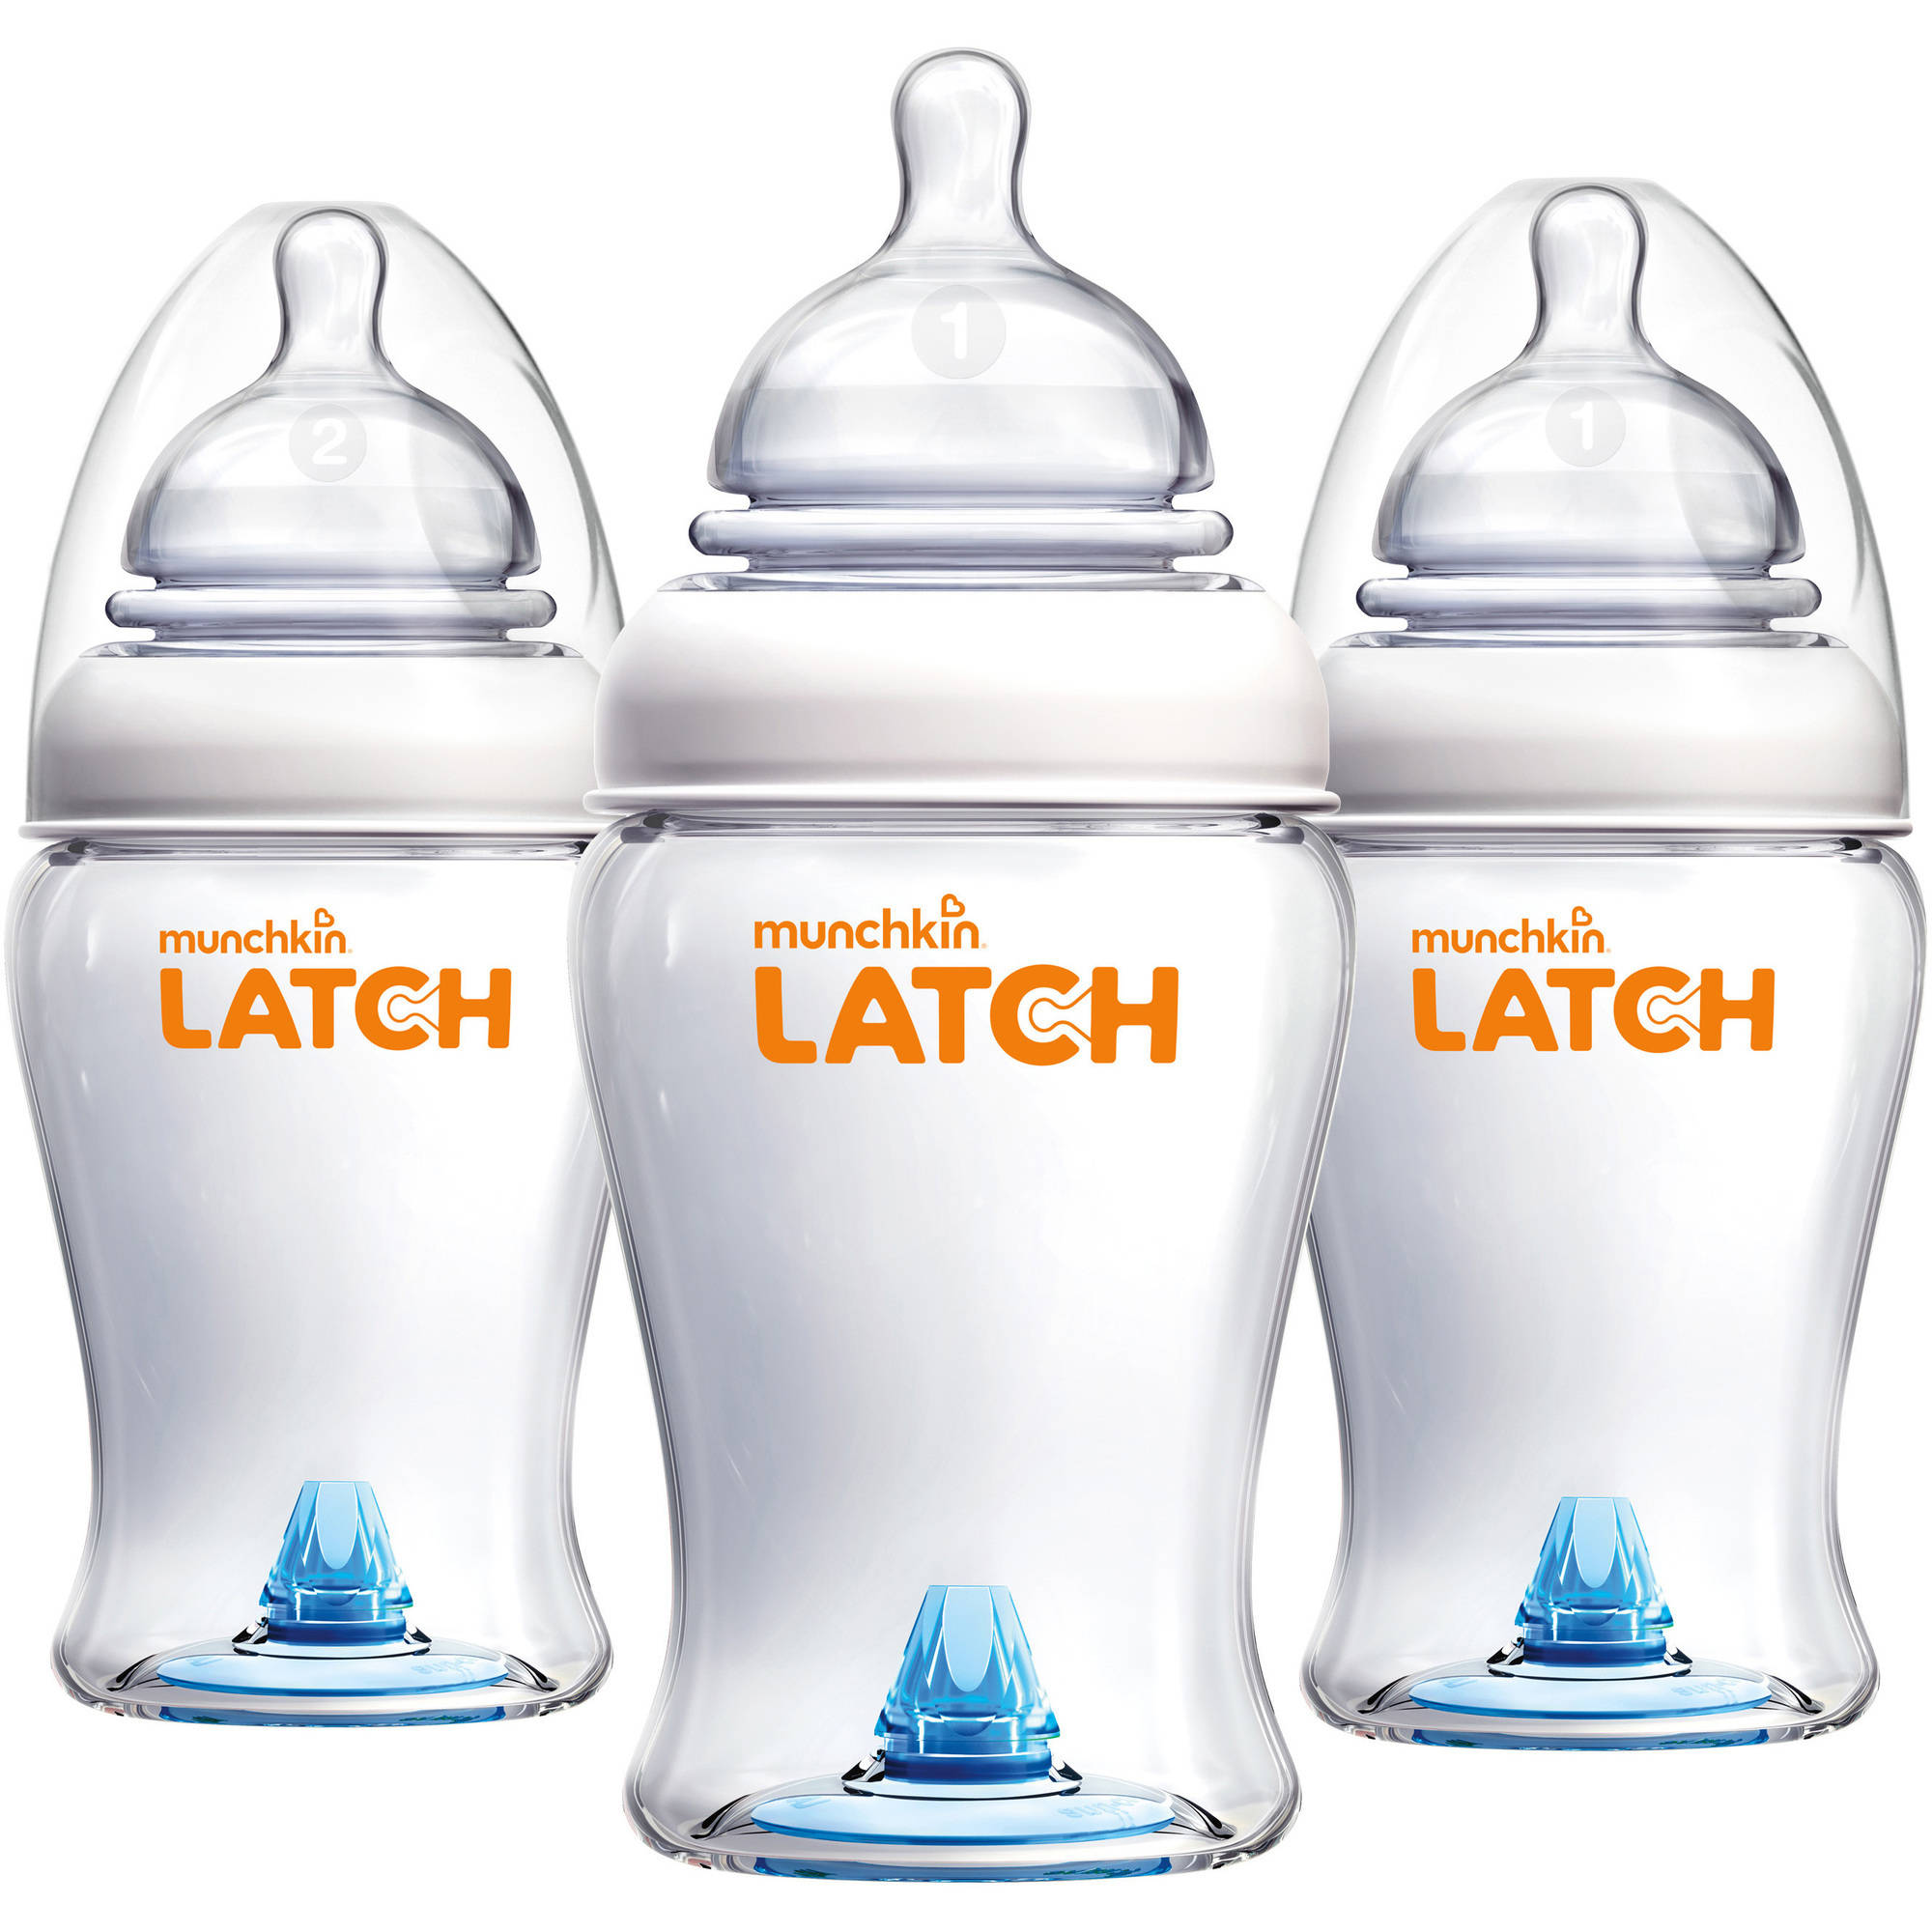 Munchkin Latch 8 oz Bottle BPA Free, 3 ct